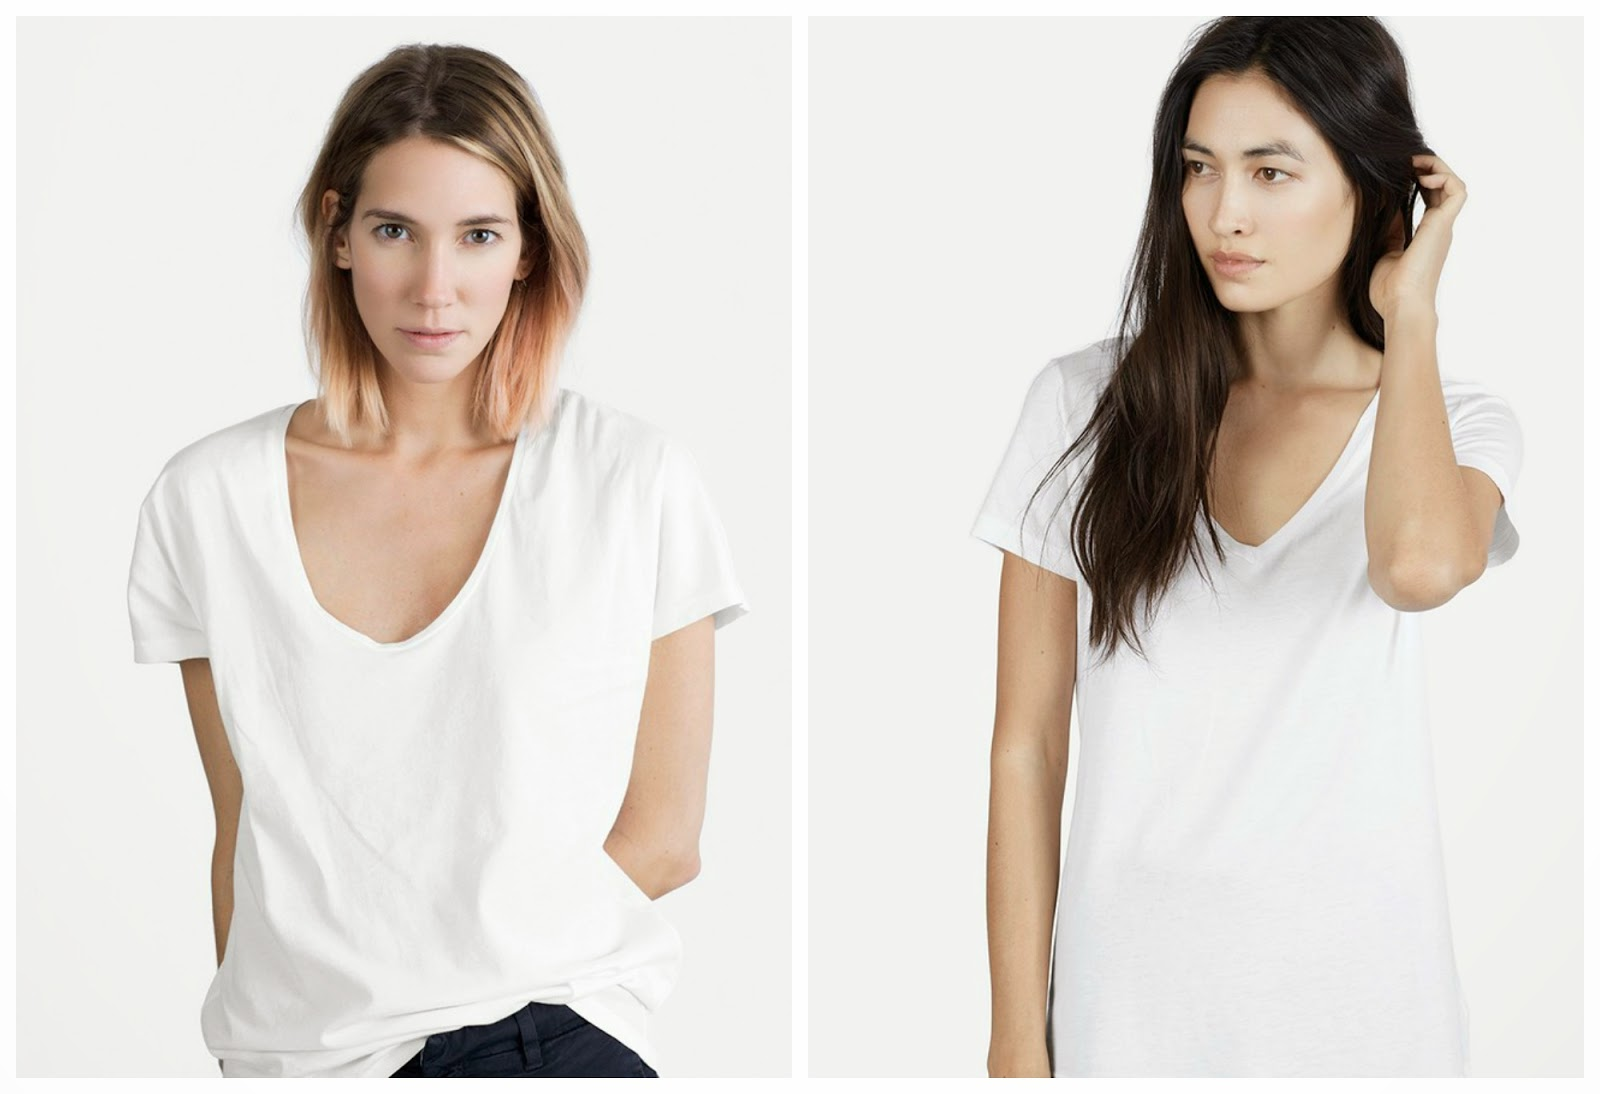 everlane, everlane tee, everlane v neck, white tee, everlane u neck